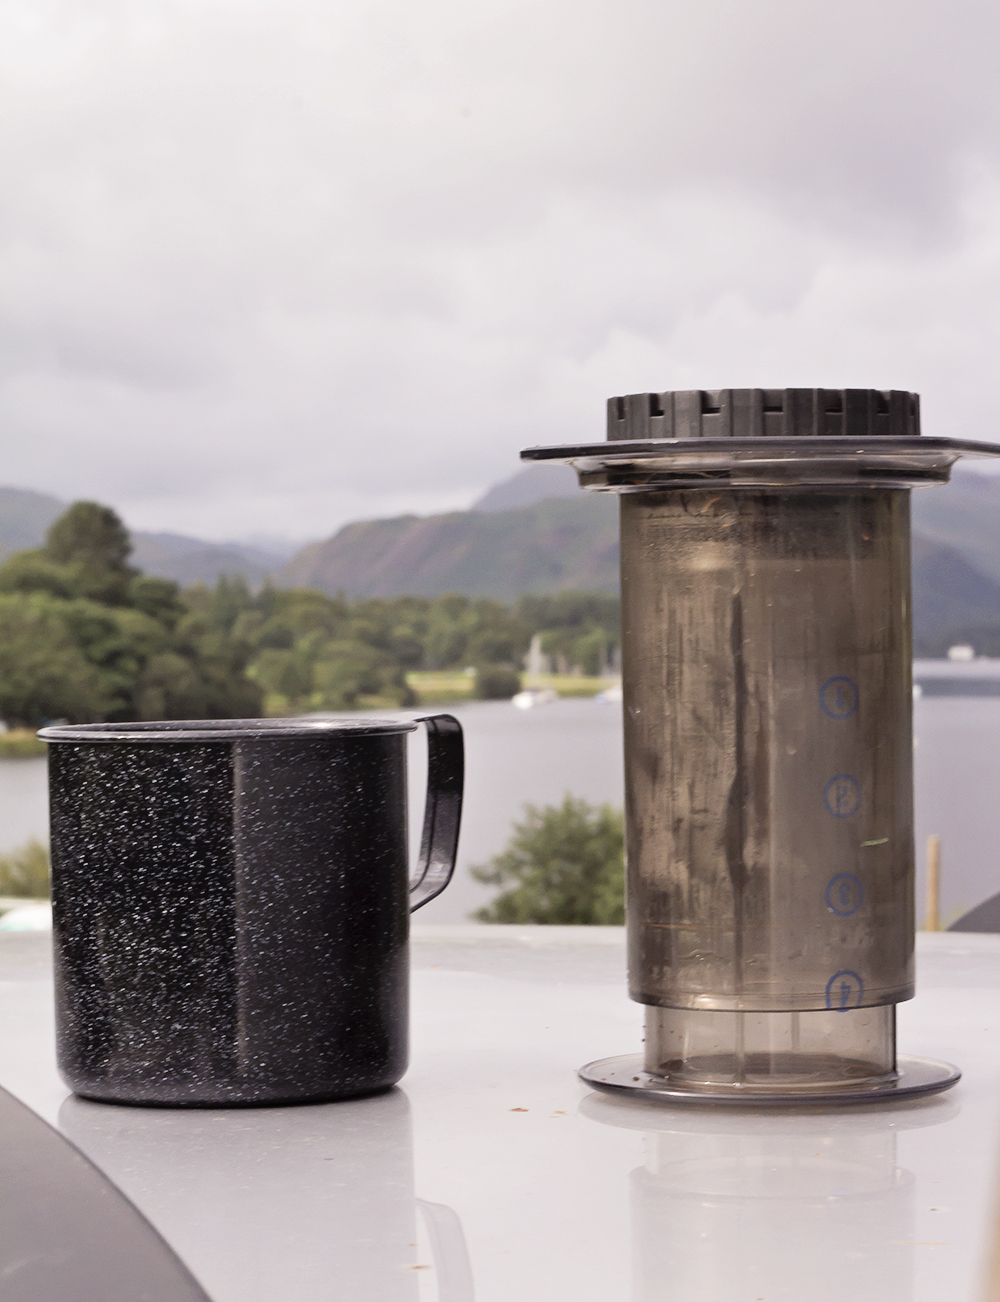 Waterside Farm Ullswater Camping Travel Blogger Review 8